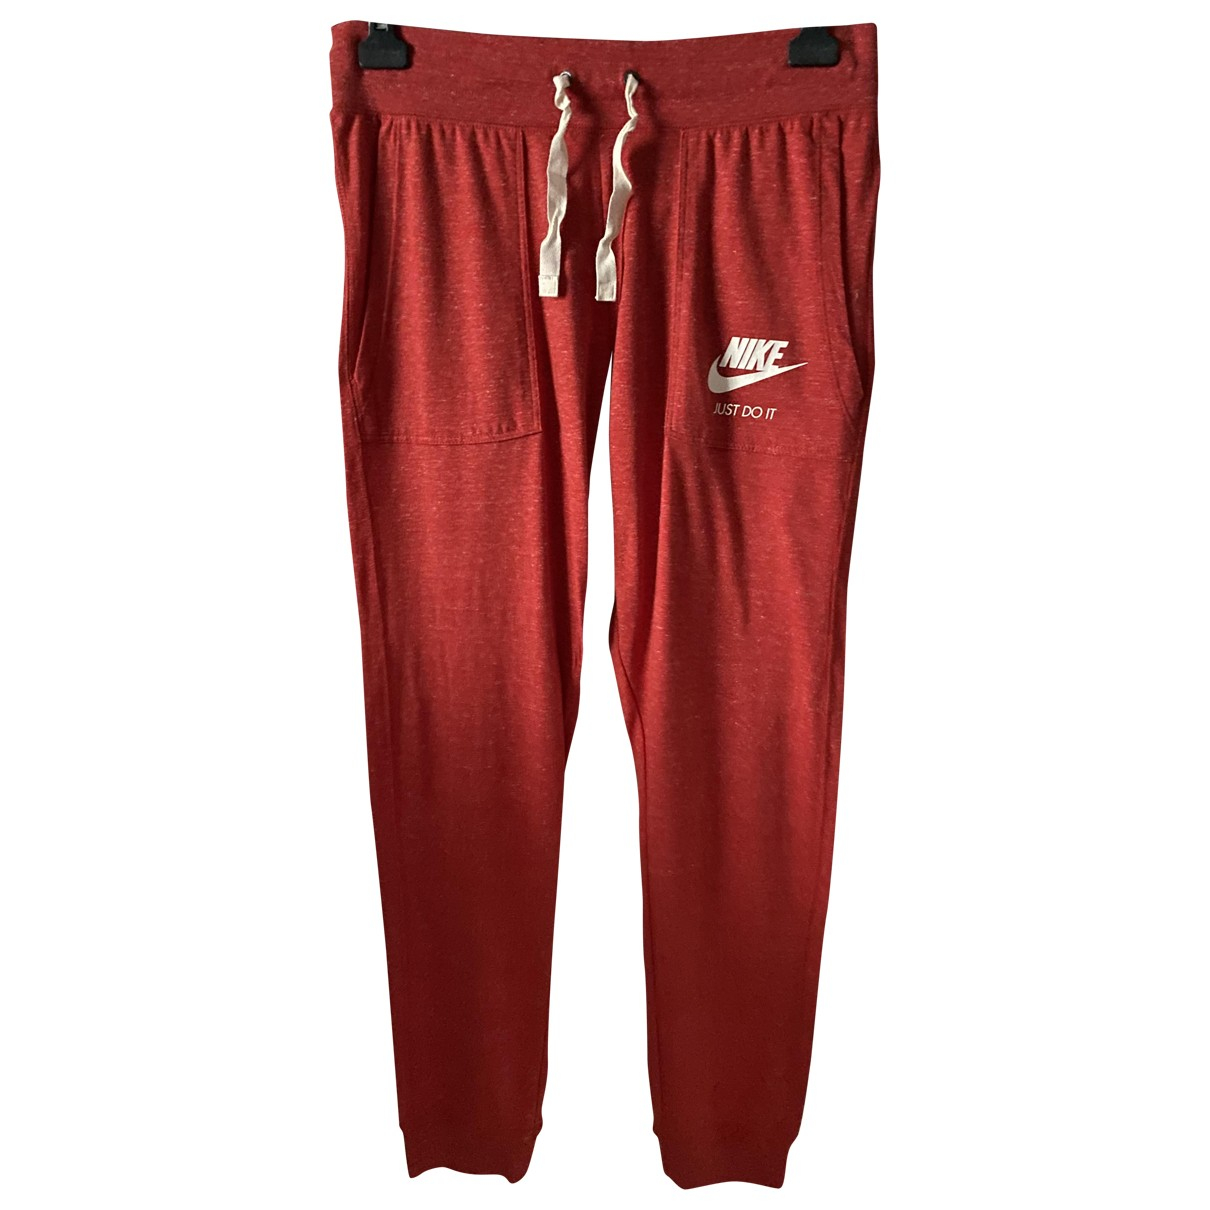 Nike \N Red Cotton Trousers for Women M International